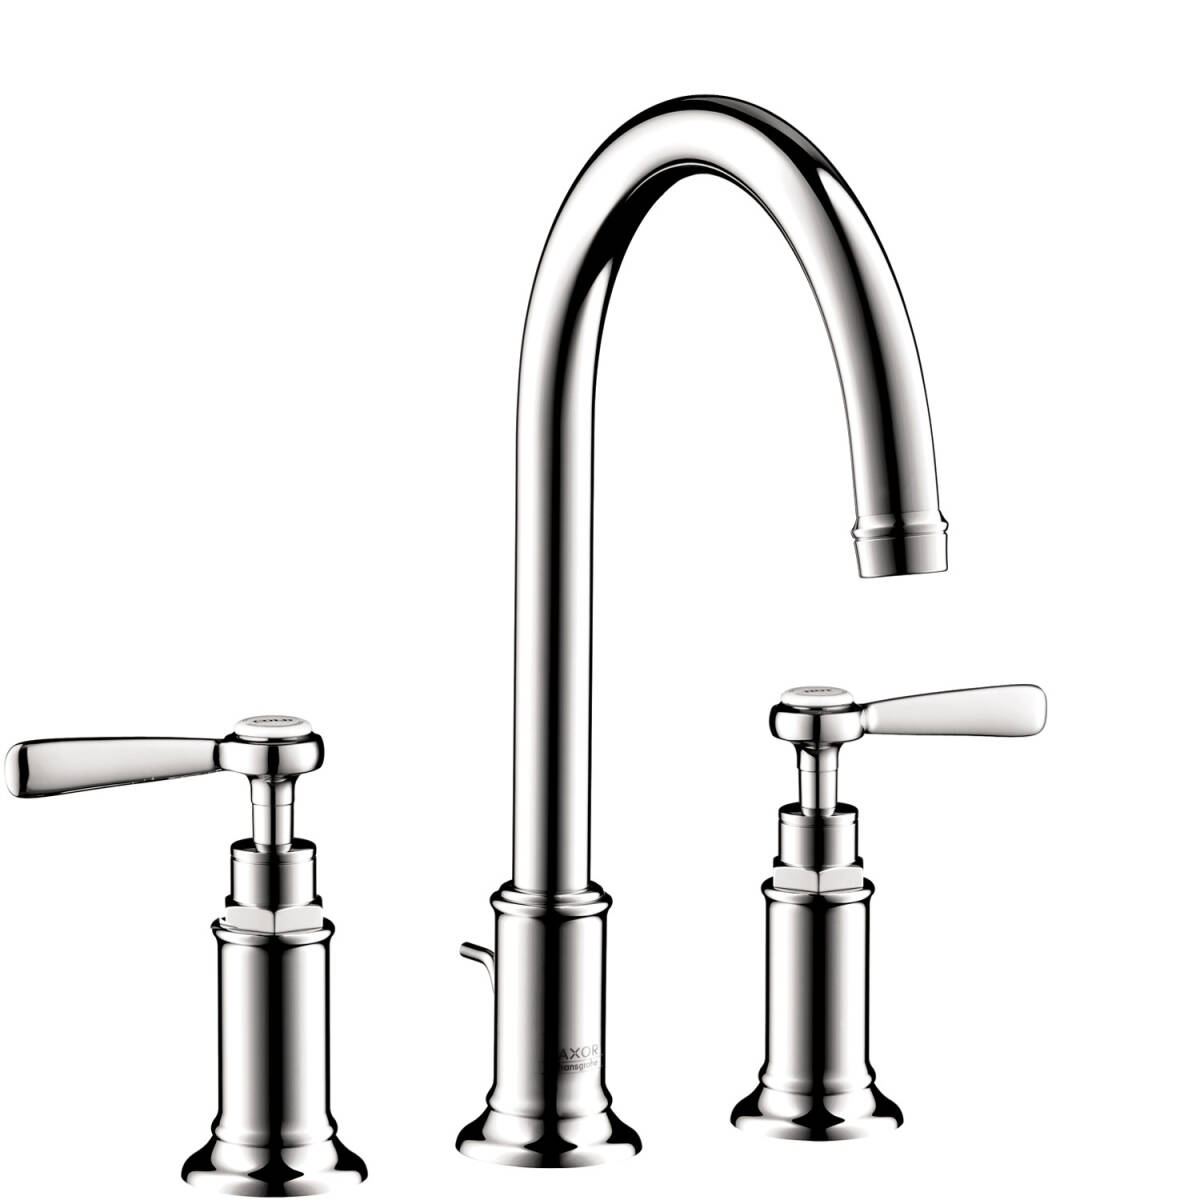 3-hole basin mixer 180 with lever handles and pop-up waste set, Chrome, 16514001